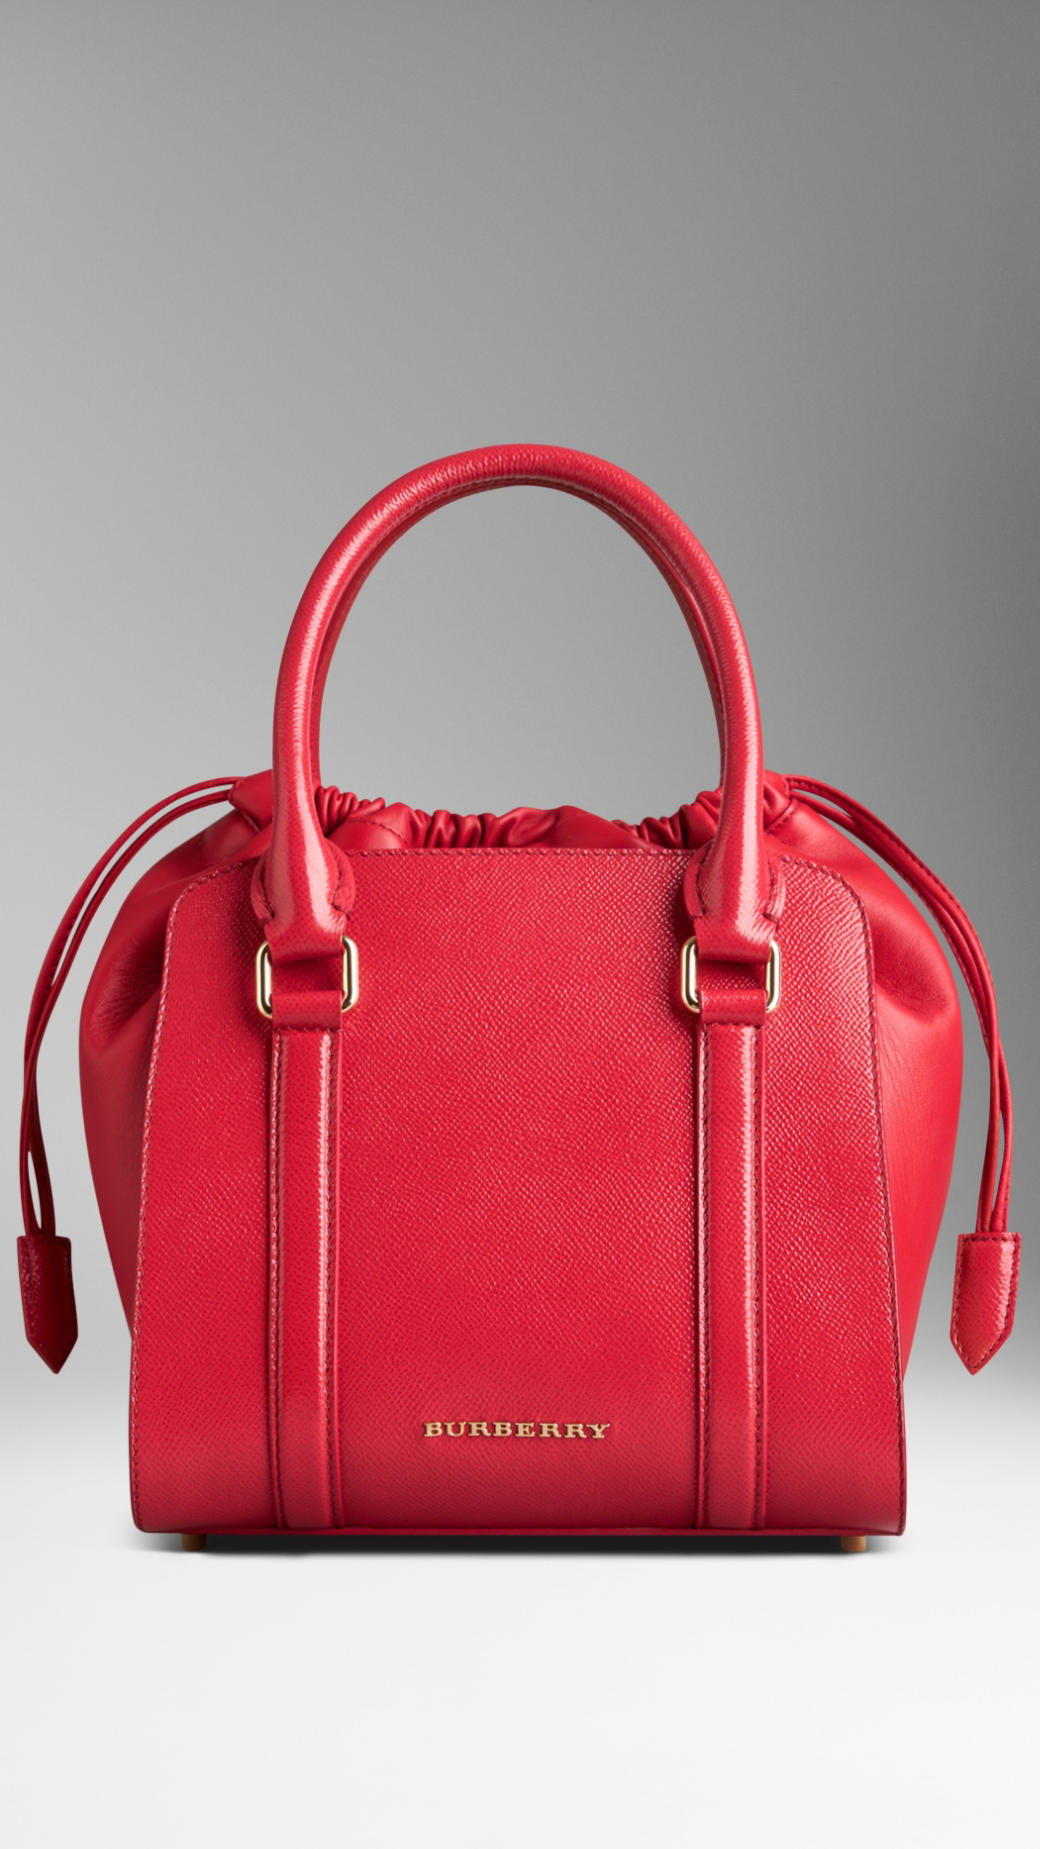 Lyst Burberry Small Patent London Leather Tote Bag In Red